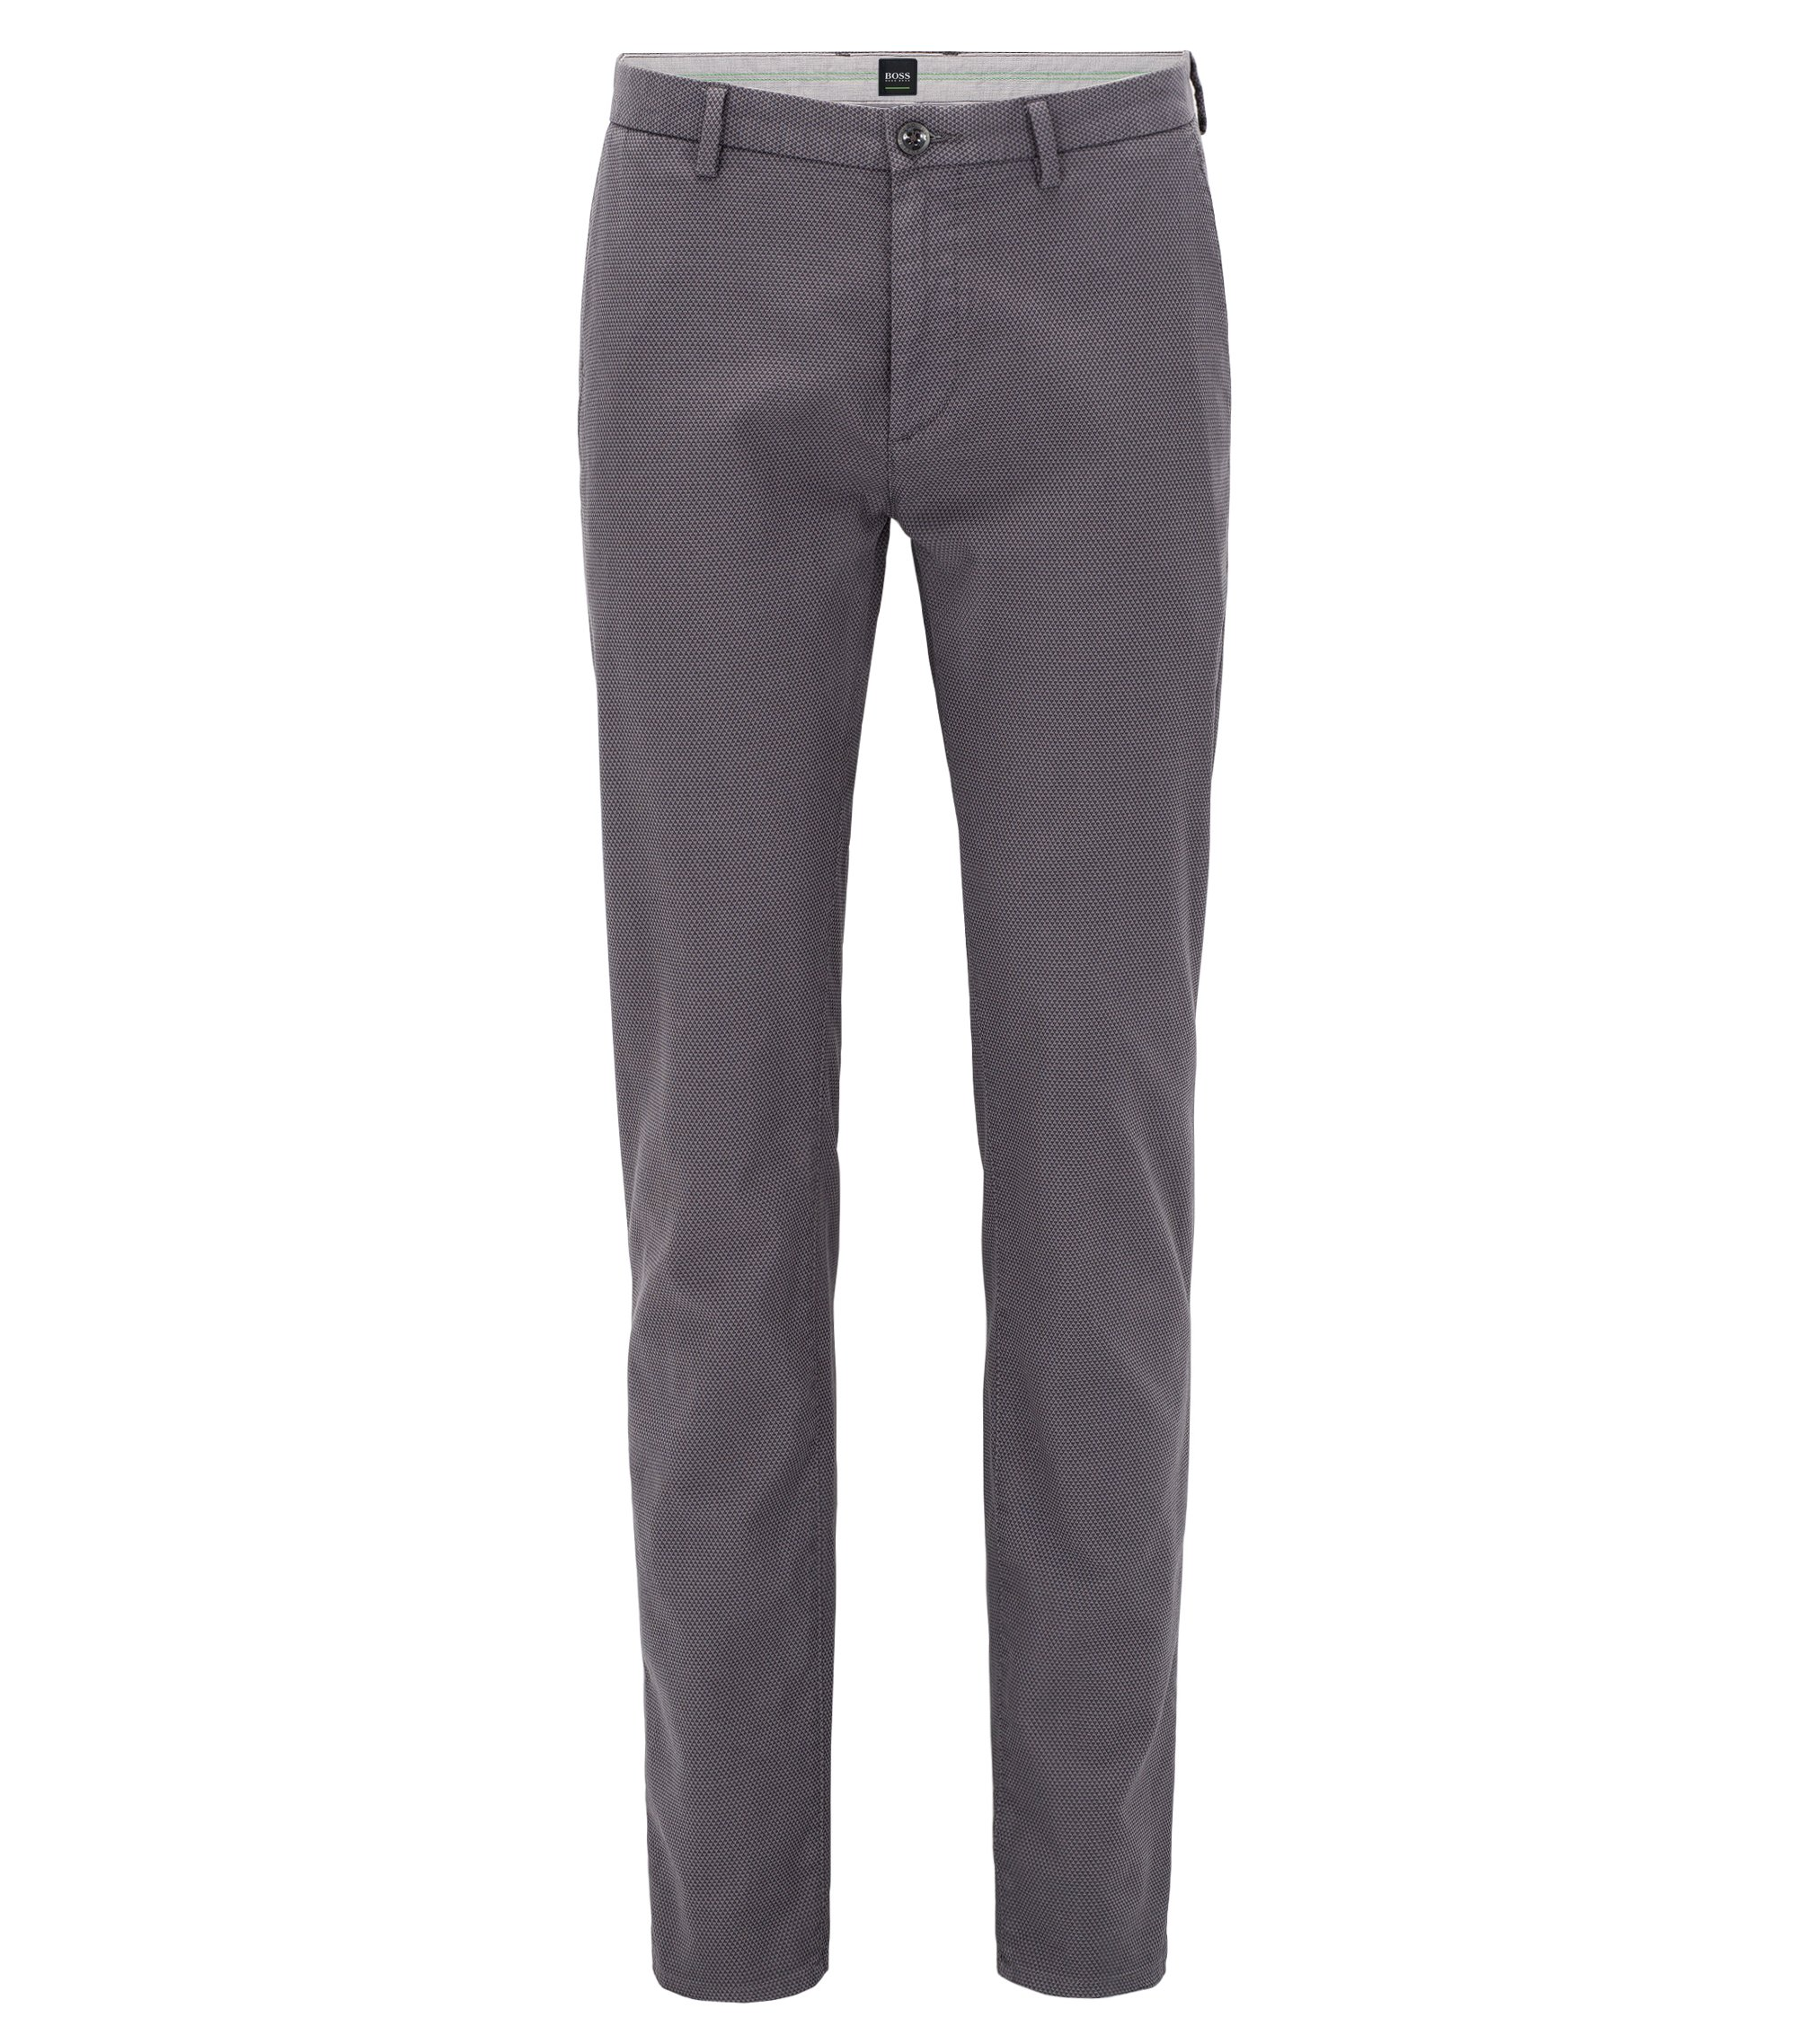 Pantalon chino Slim Fit en coton deux tons structuré, Anthracite